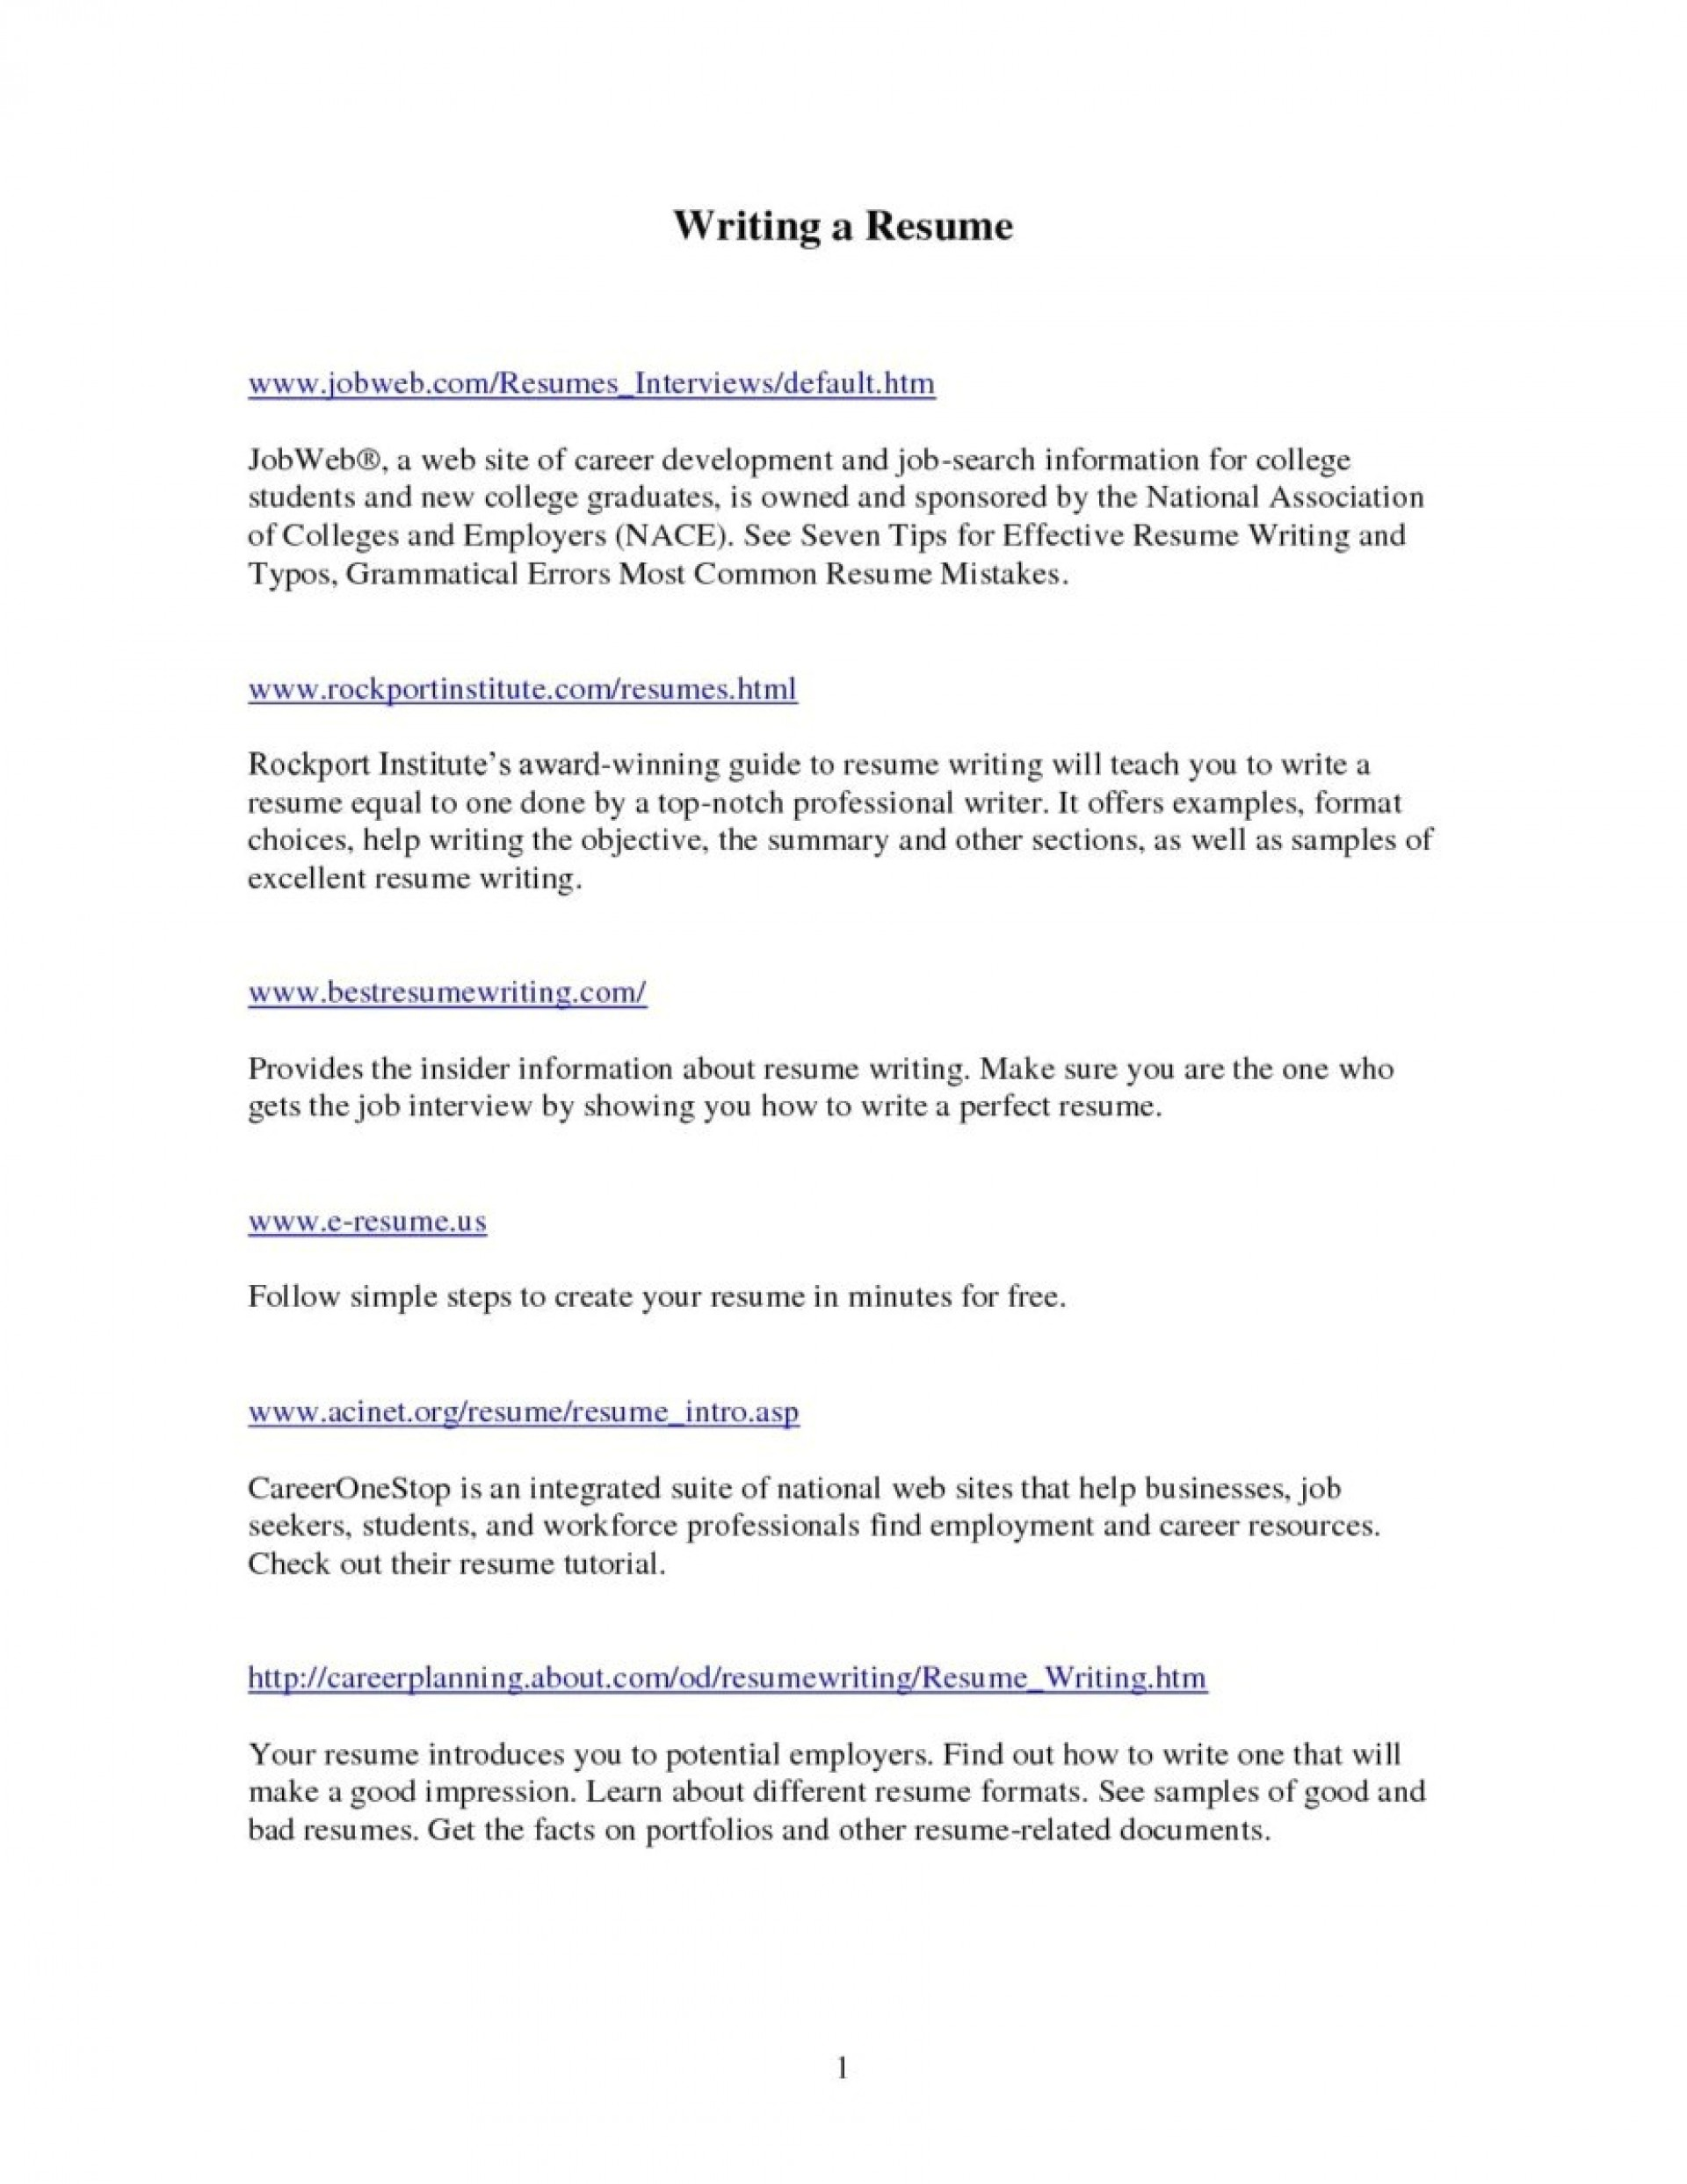 014 Research Paper Resume Writing Service Reviews Format Best Writers Inspirational Help Professional Of Free Services How Write Outstanding Outline To An For A Mla Ppt College 1920